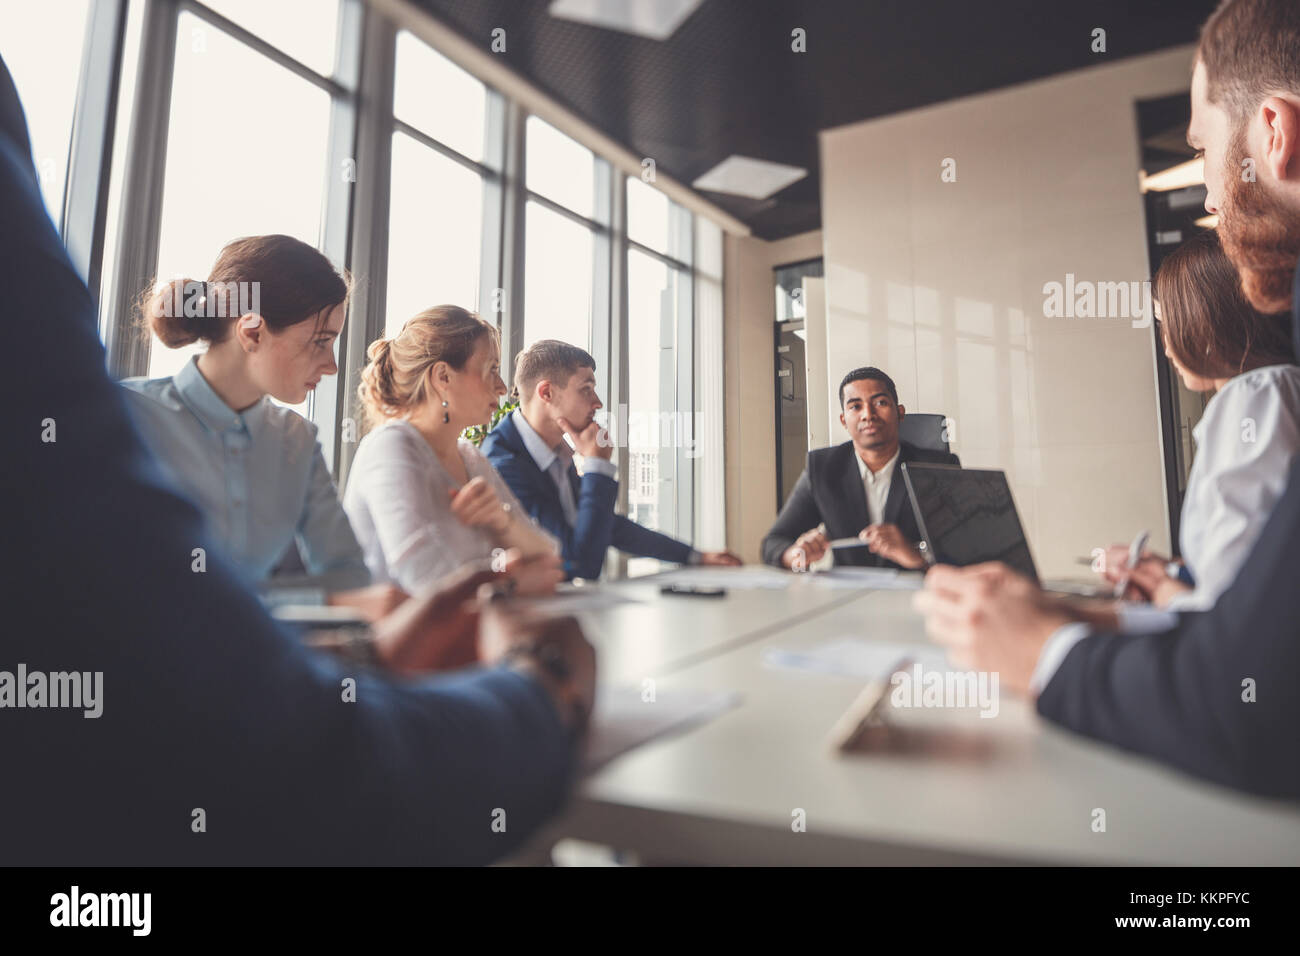 black leader of the business people giving a speech in a conference room. - Stock Image